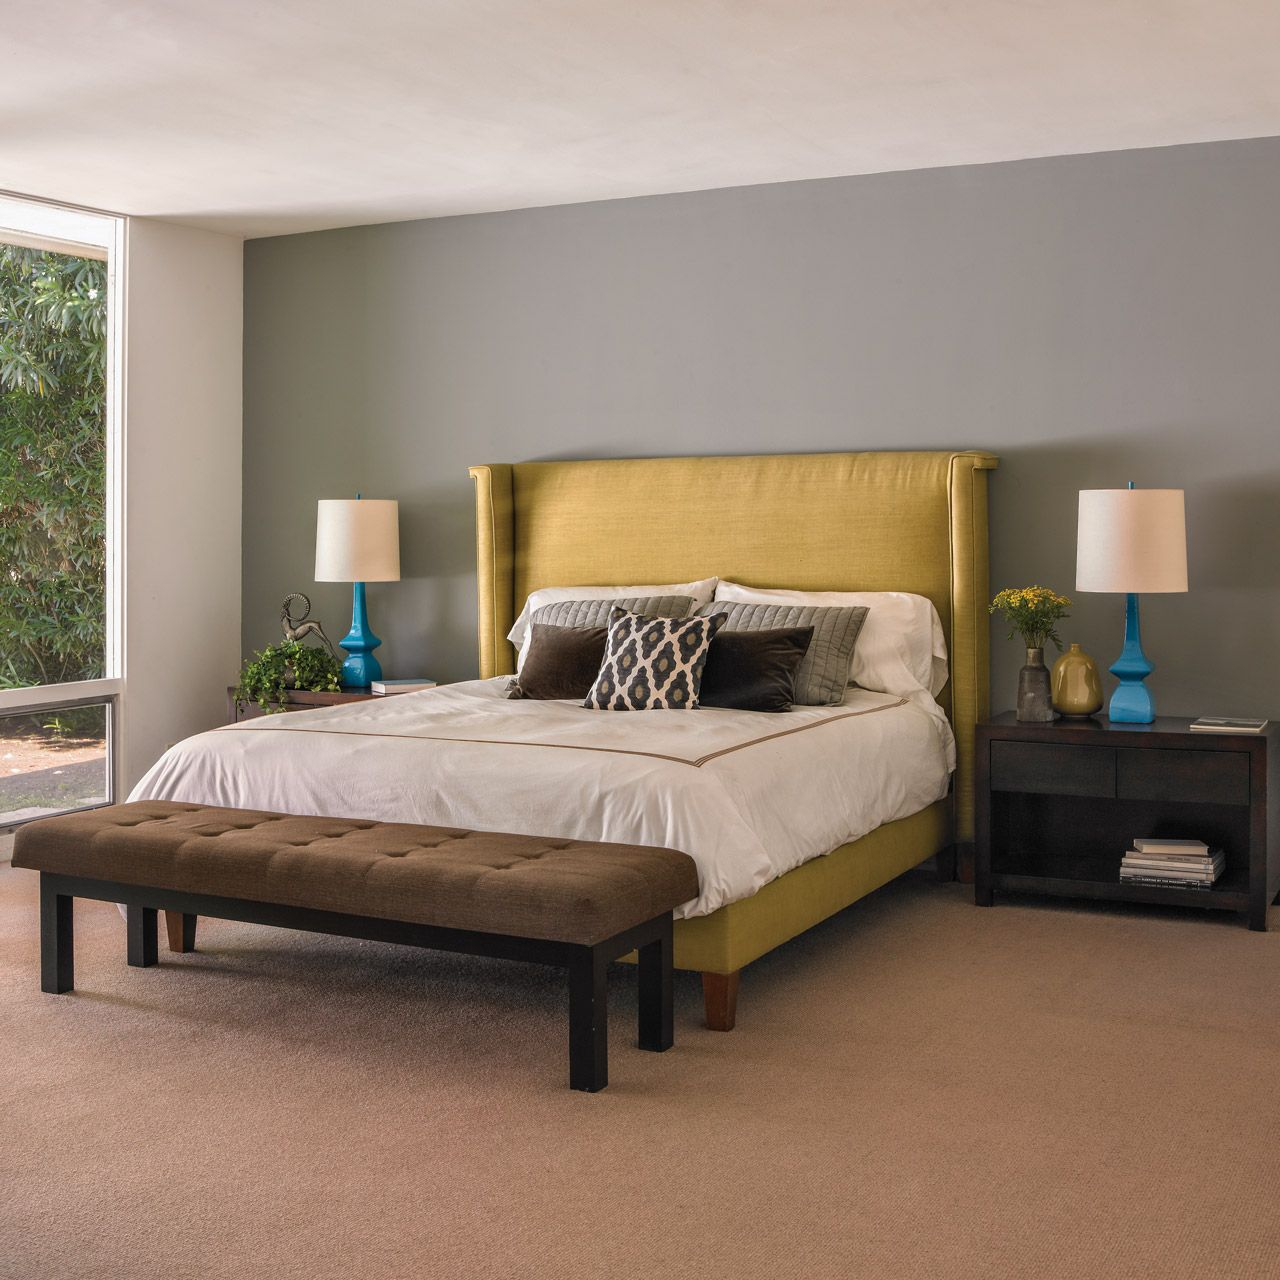 Accent Colors For Grey Walls: Dunn-Edwards Paints Paint Colors: Accent Wall: Deco Gray